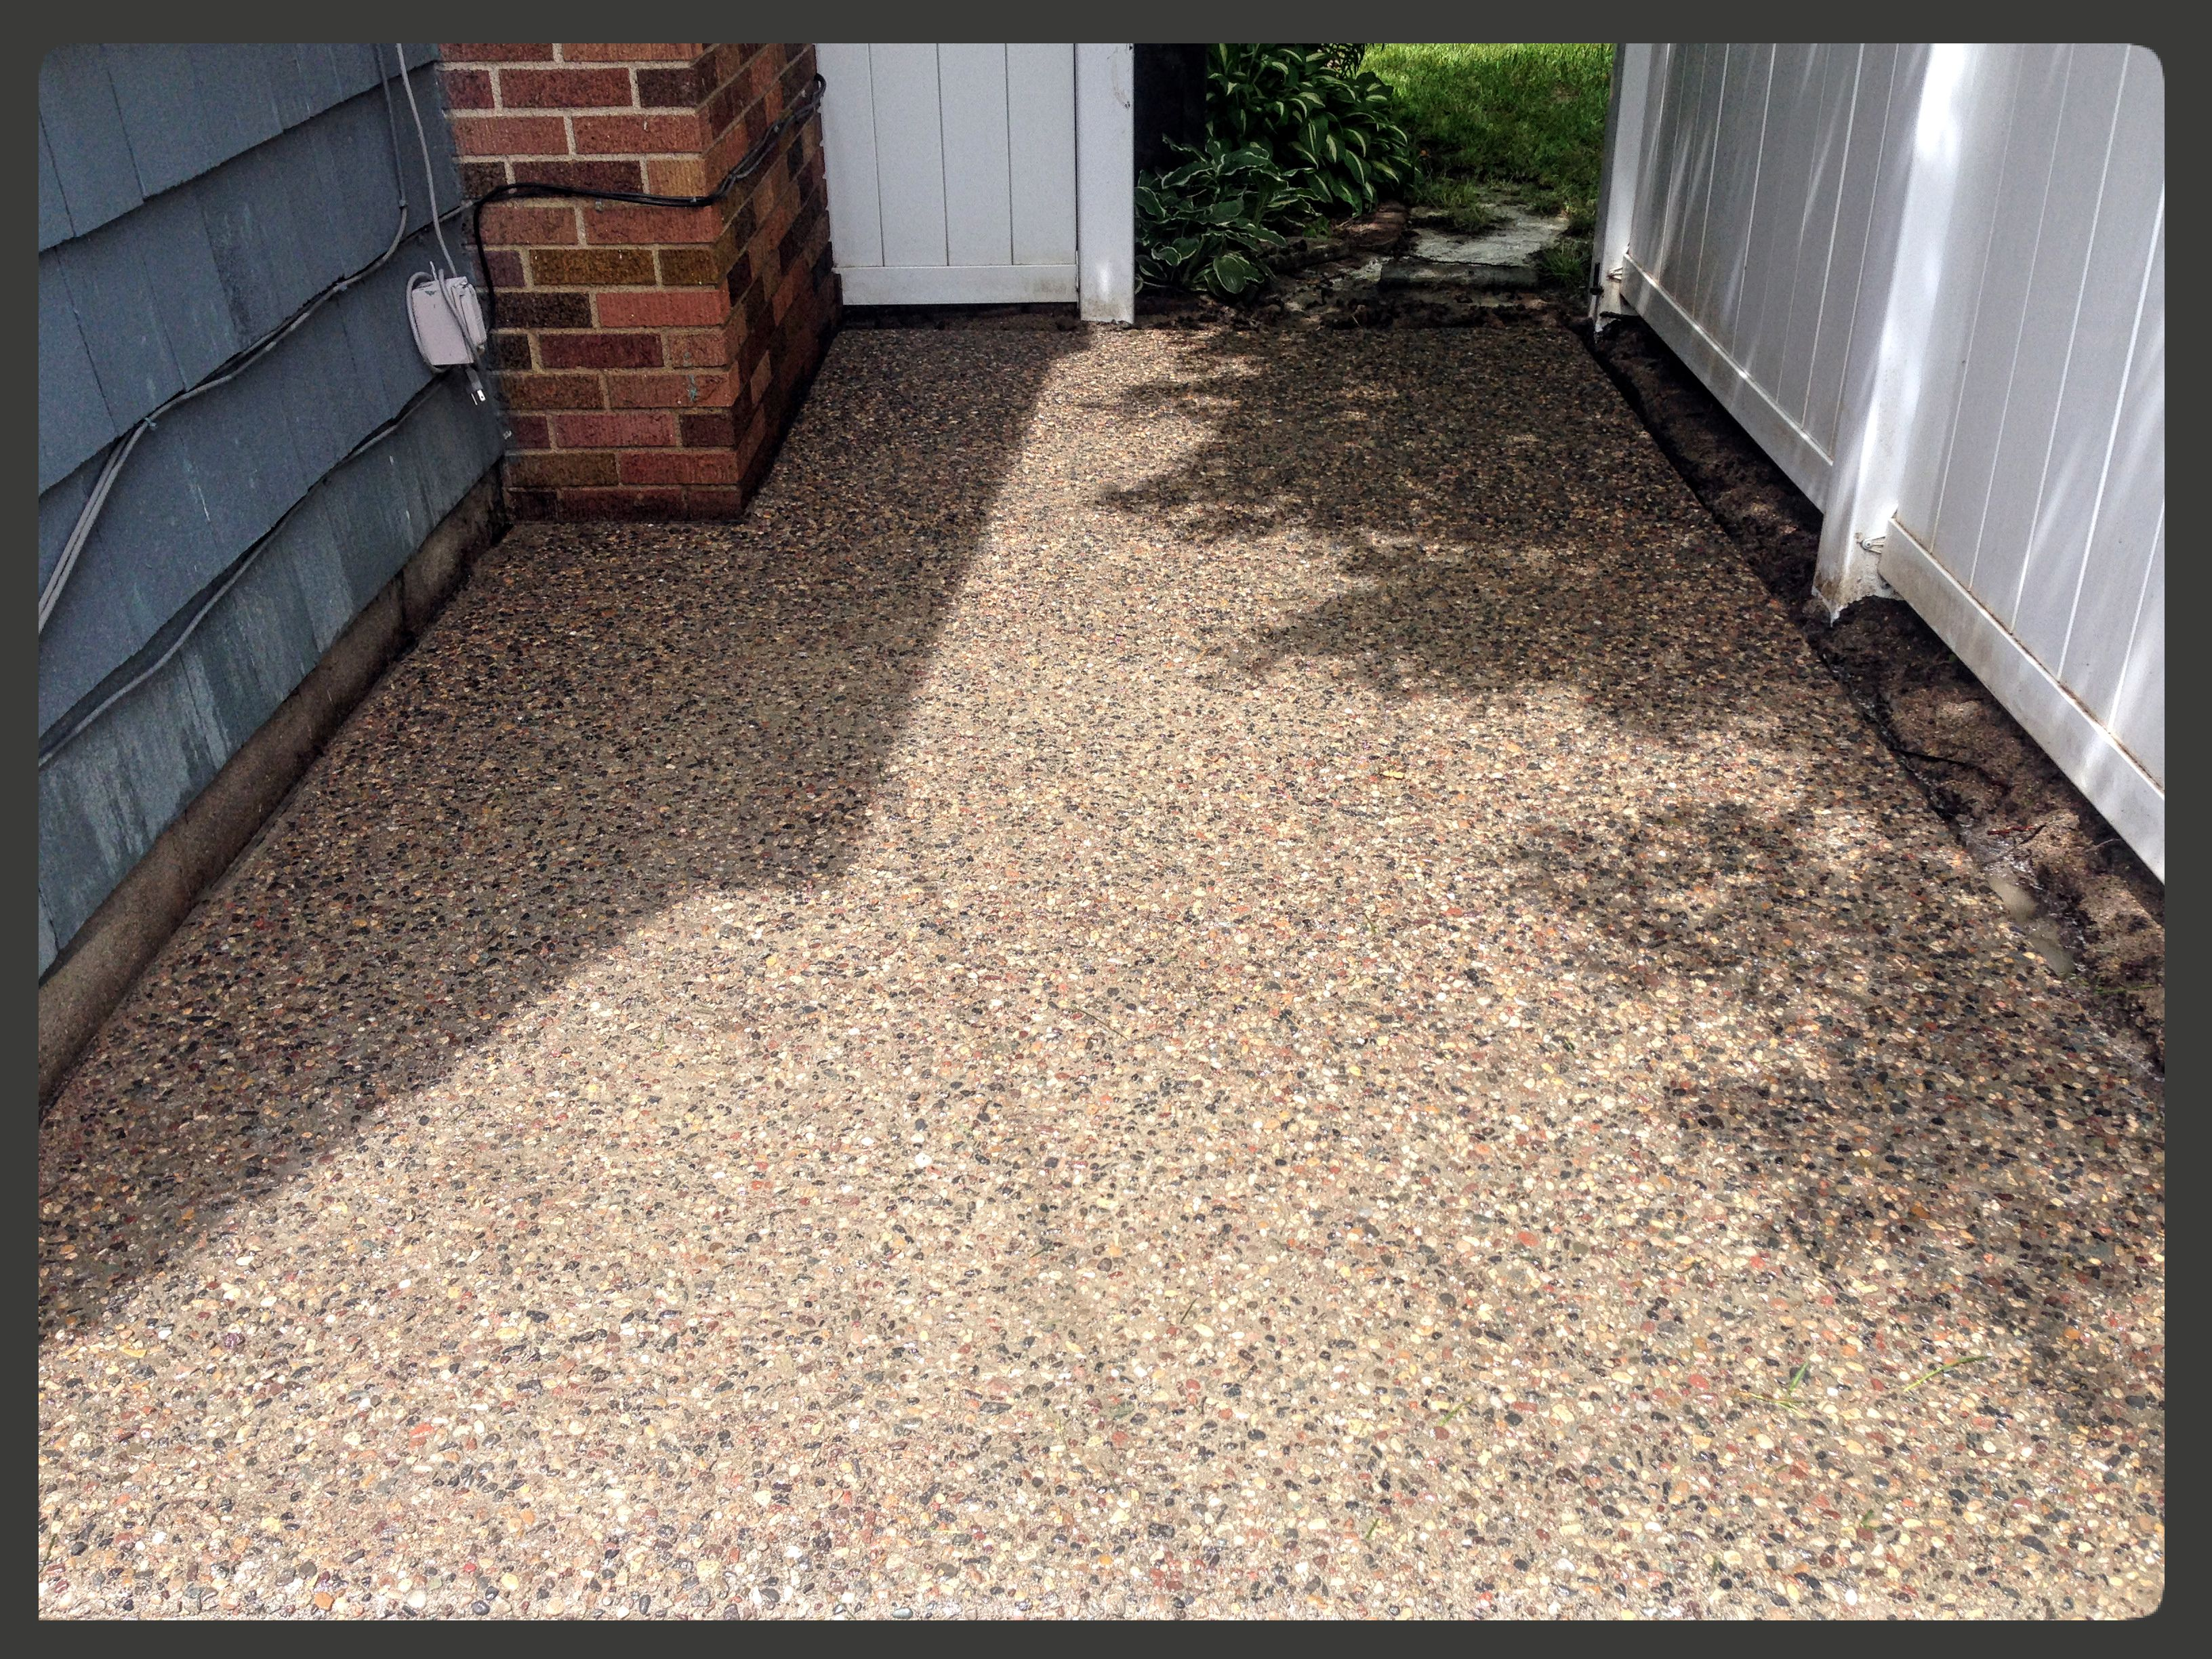 ... exposed aggregate cement patio St. Paul MN & Exposed Aggregate Patio St. Paul MN | VanVleet Construction